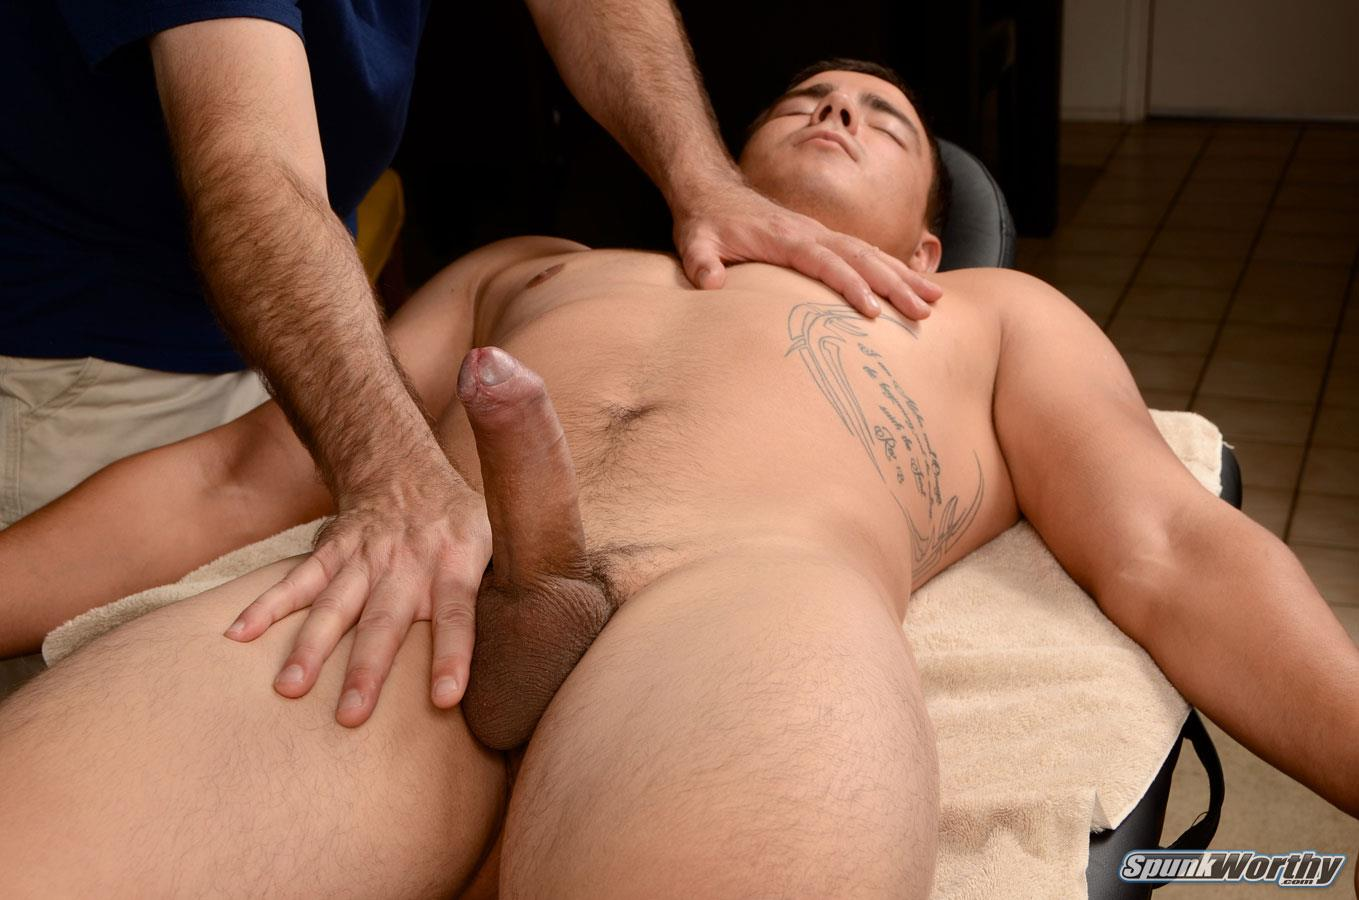 SpunkWorthy Yuri Straight Marine Getting Massage With A Happy Ending Big Uncut Cock Amateur Gay Porn 13 Straight Uncut Marine Gets A Massage With A Happy Ending From A Guy